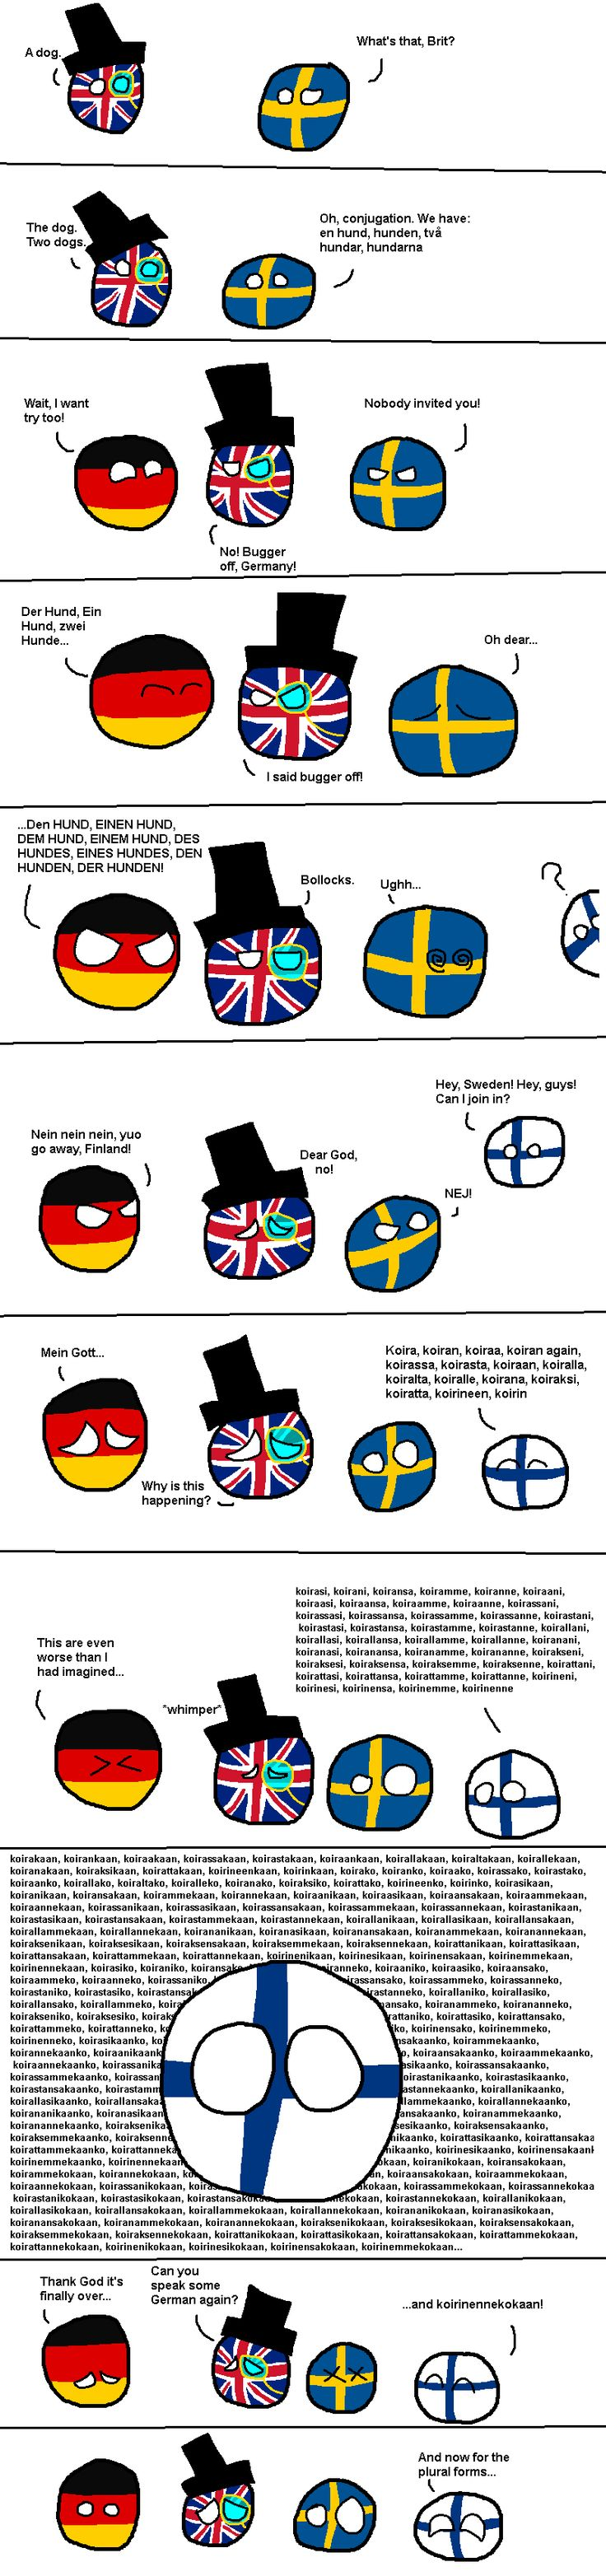 Oh, the fine language of Finland